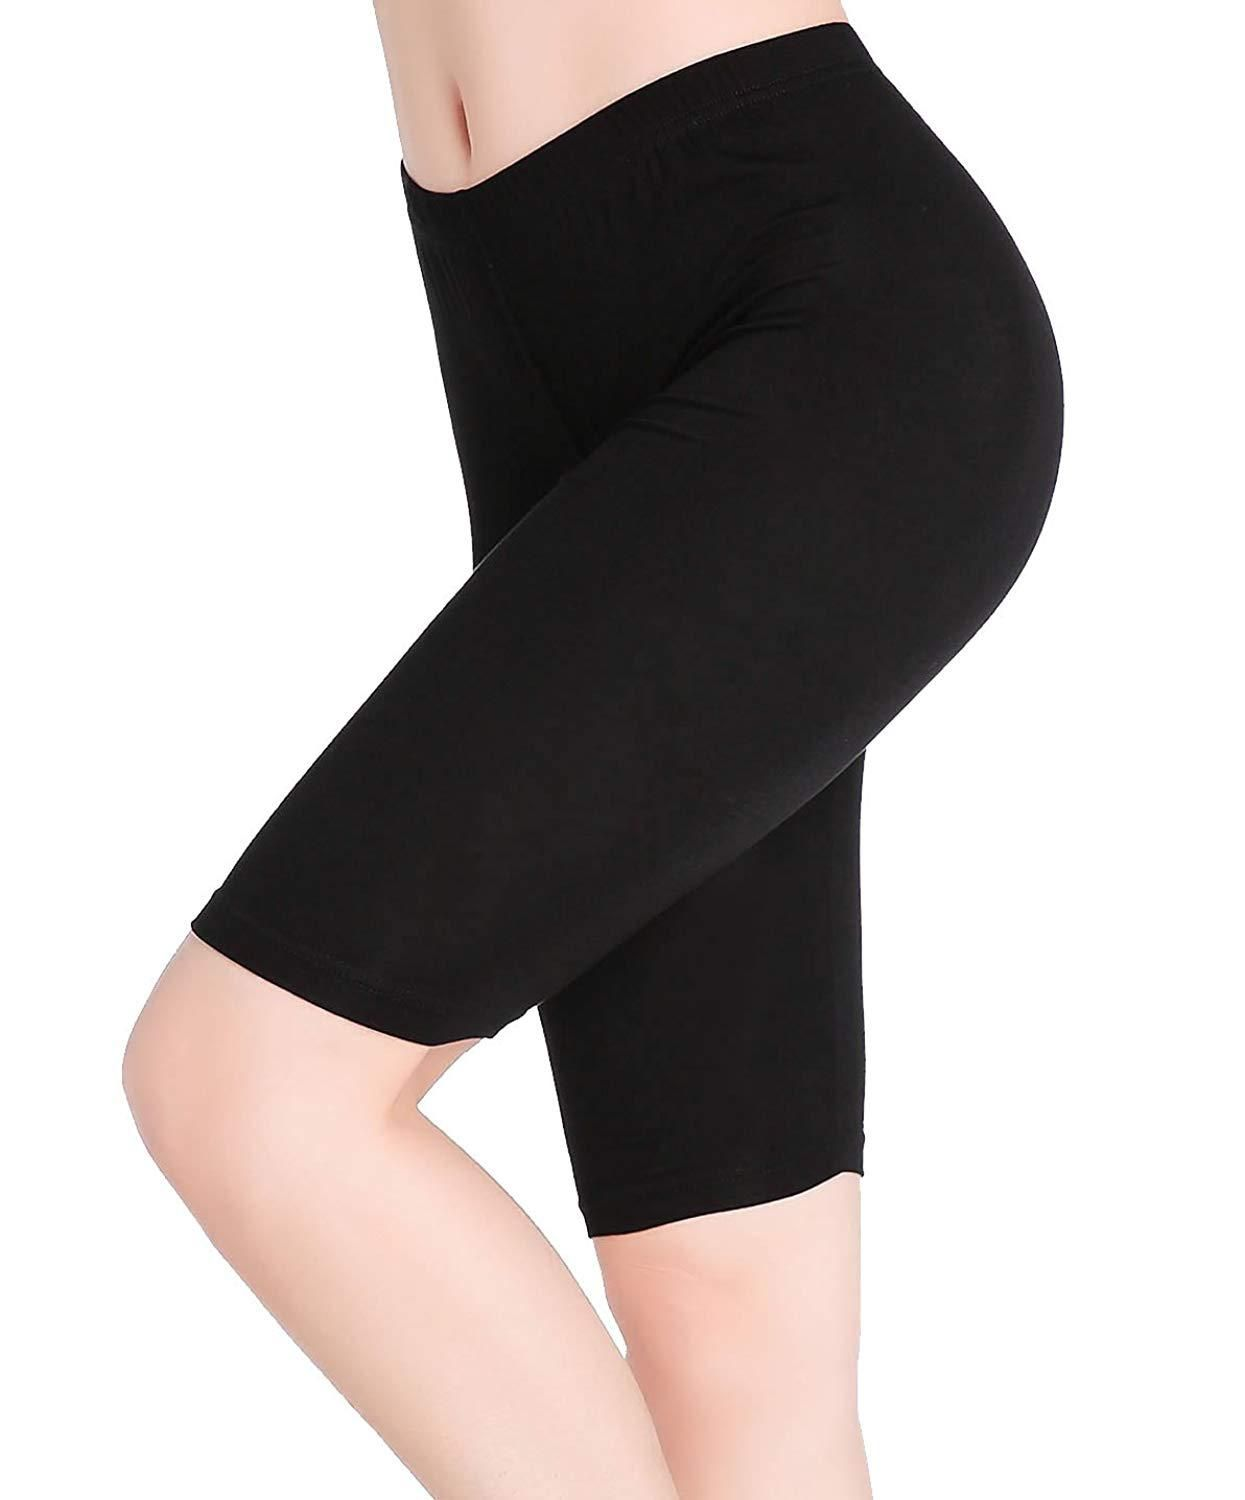 c0fde17abf3fce CnlanRow Womens Under Skirt Pants Soft Ultra Stretch Knee Length Leggings  Fitness Sport Shorts Clothing -- Amazon Affiliate link.